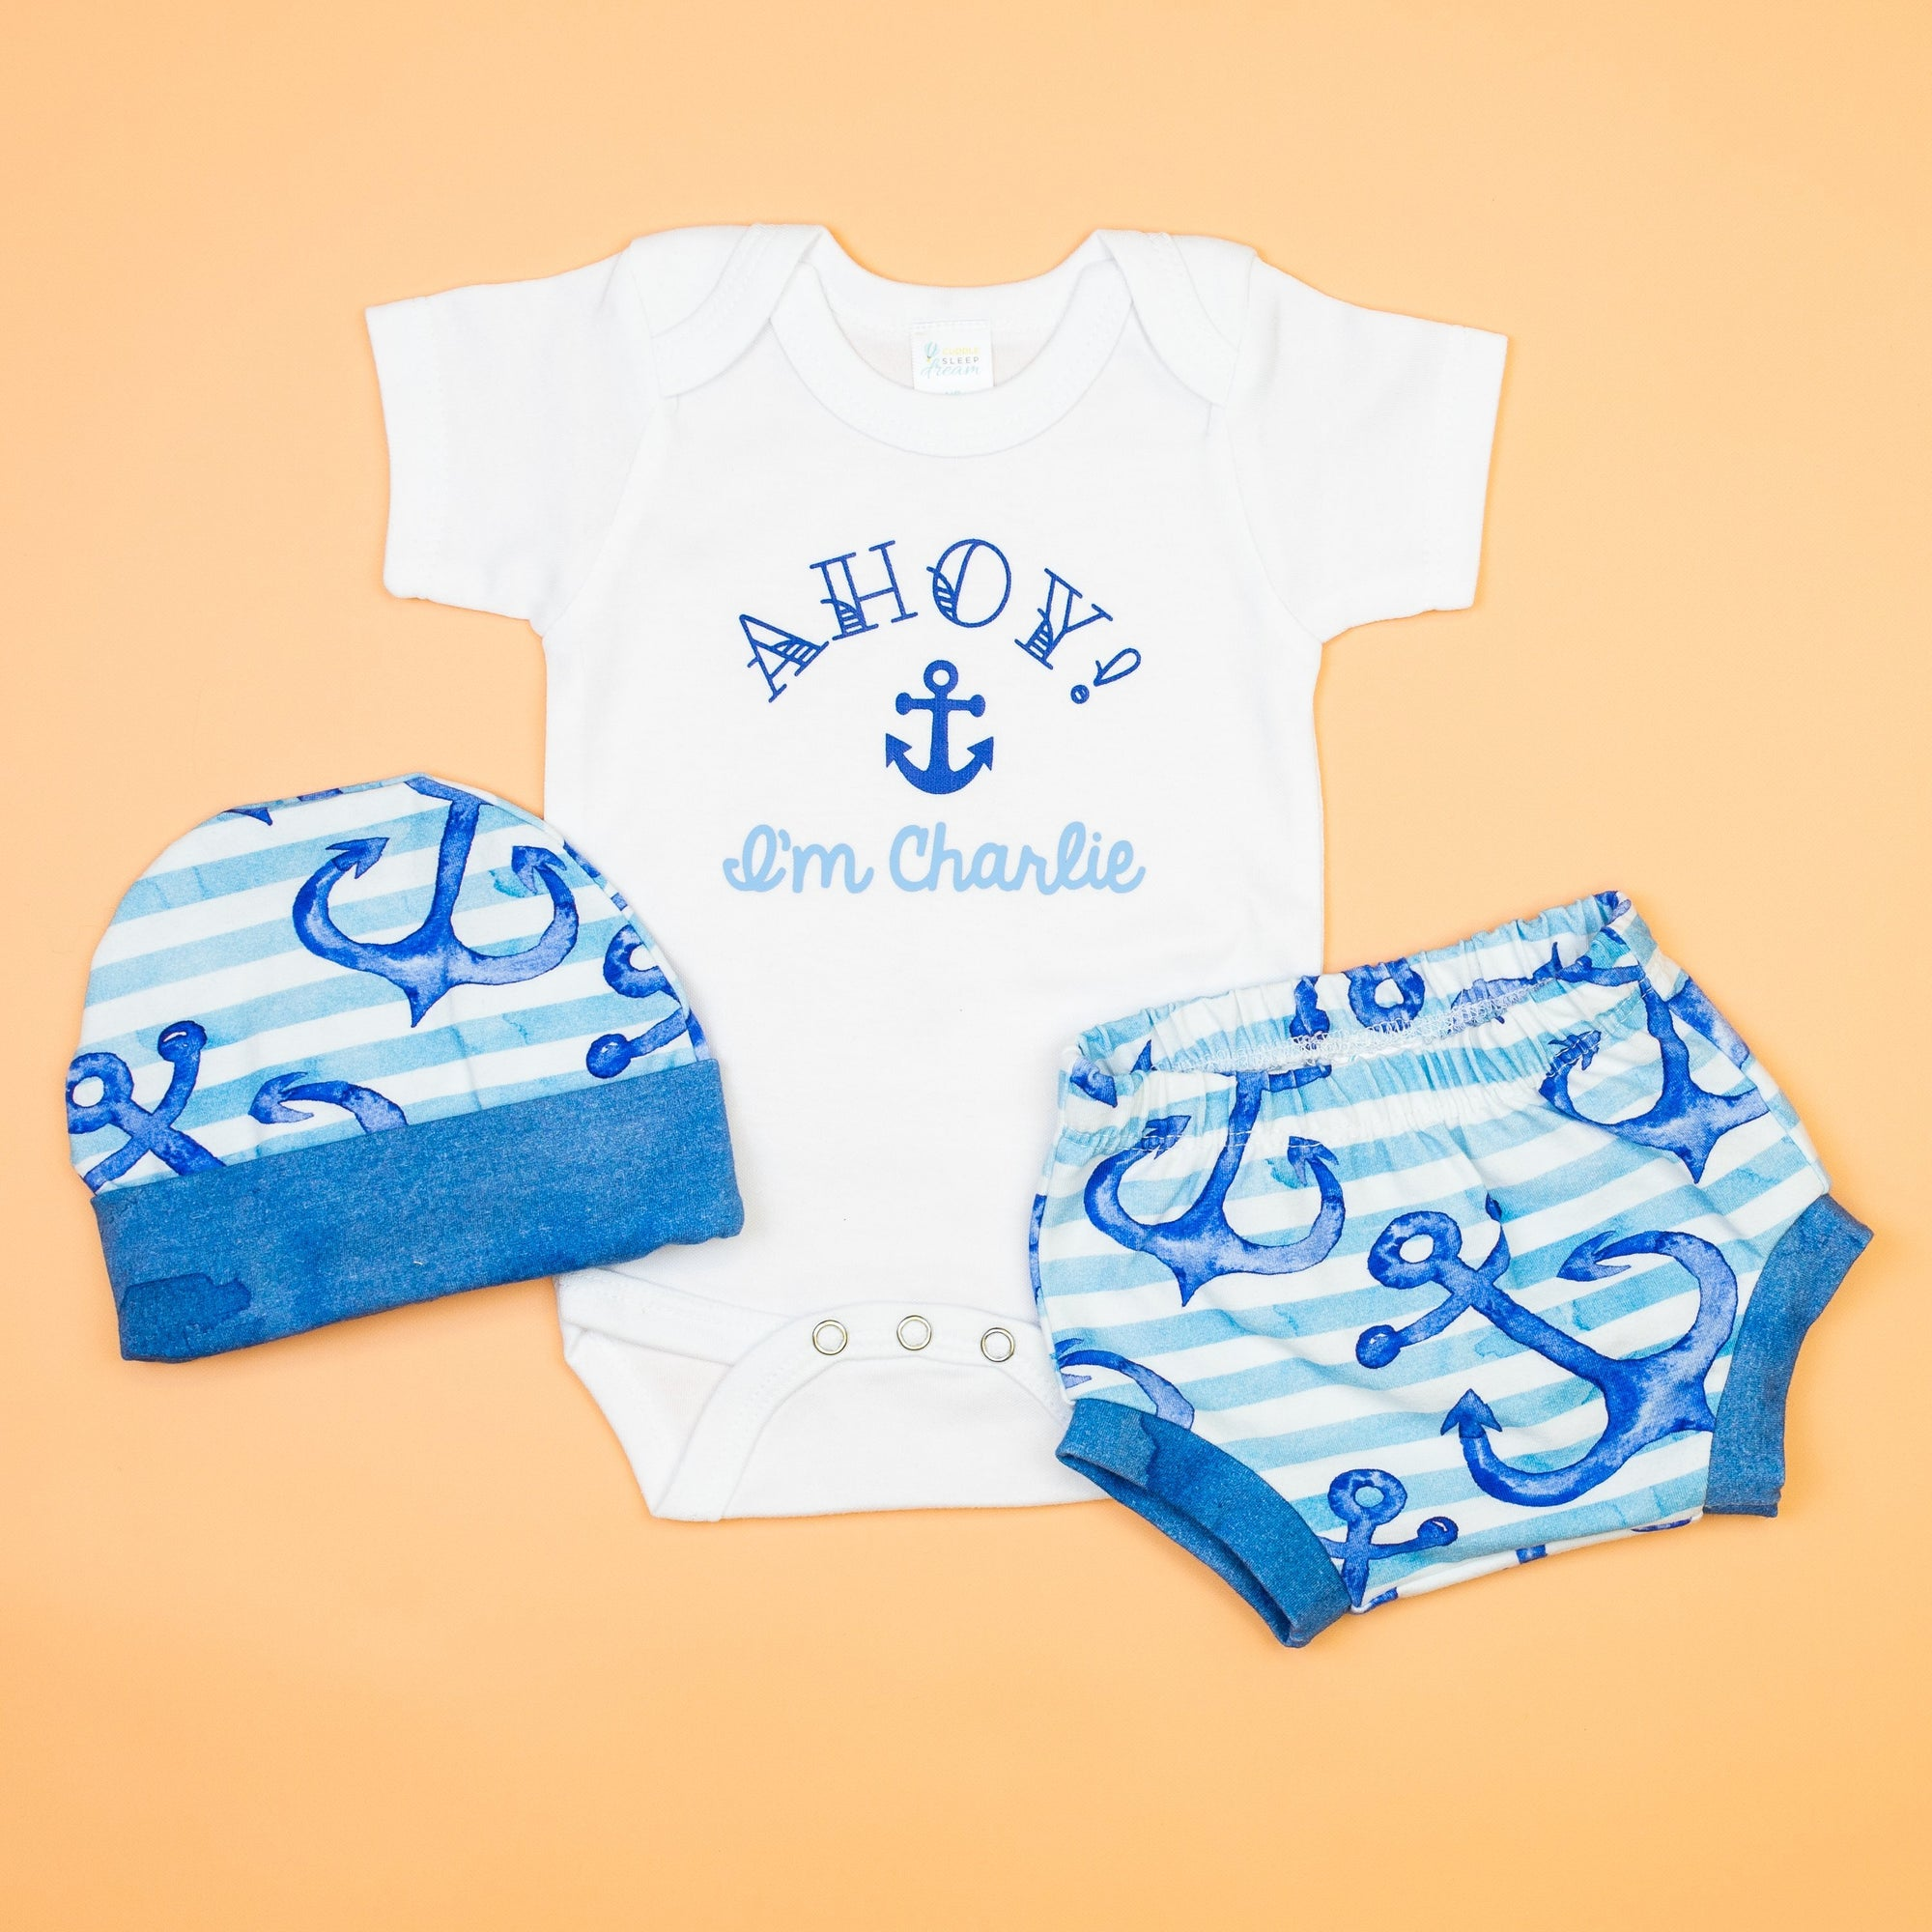 Cuddle Sleep Dream Bundles Nautical Coming Home Outfit for Summer Personalized